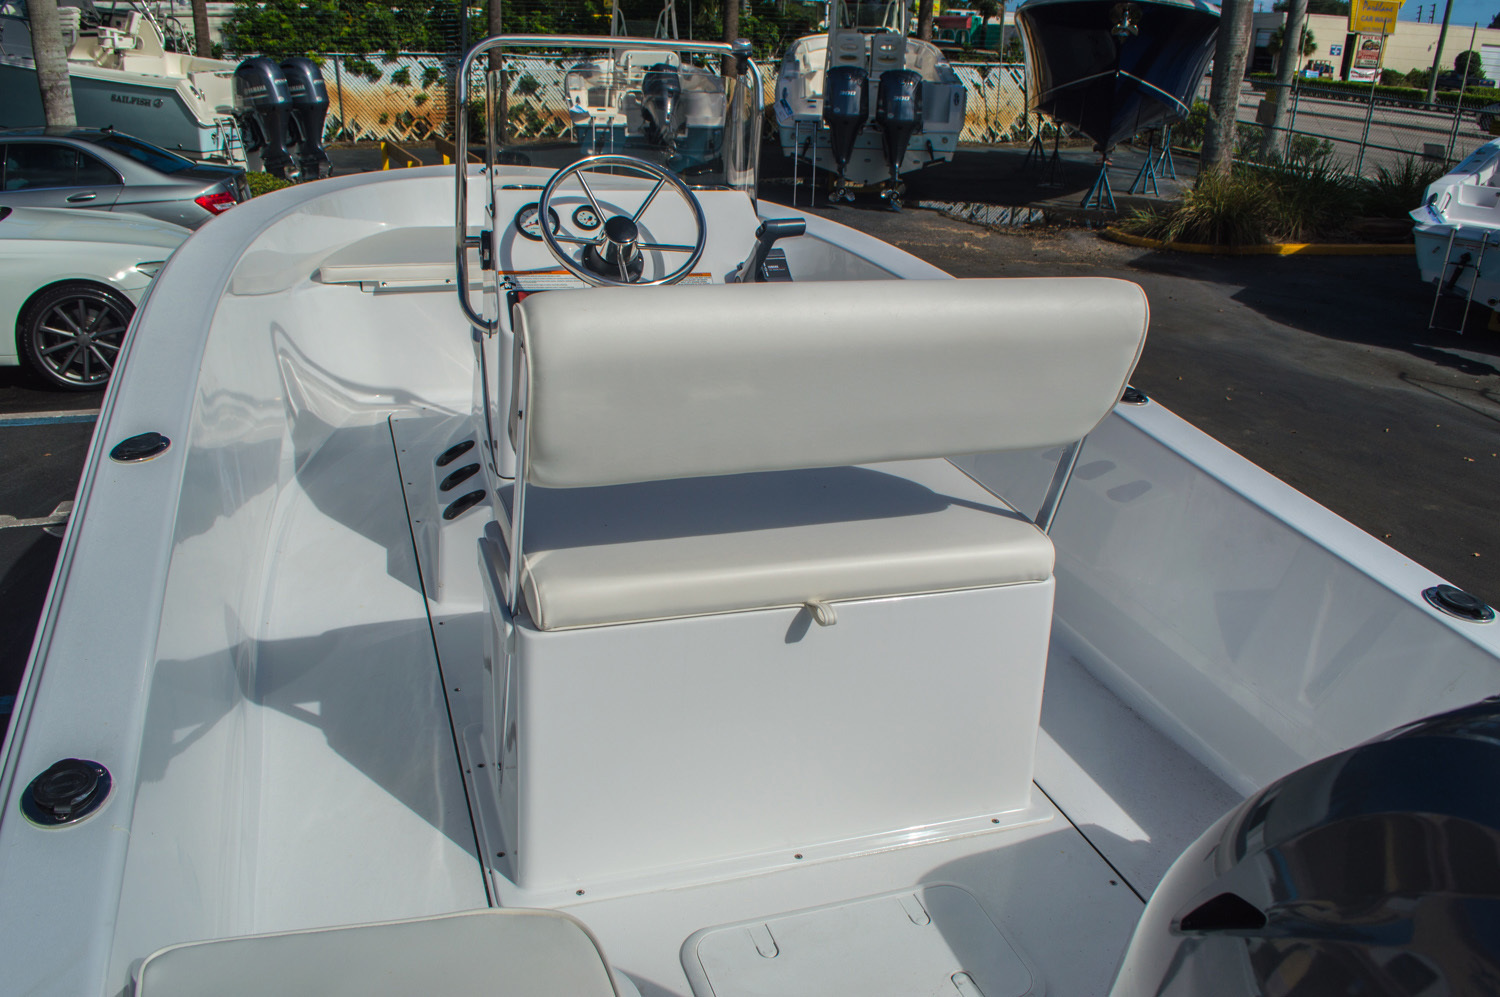 Thumbnail 8 for New 2016 Sportsman 17 Island Reef boat for sale in Vero Beach, FL